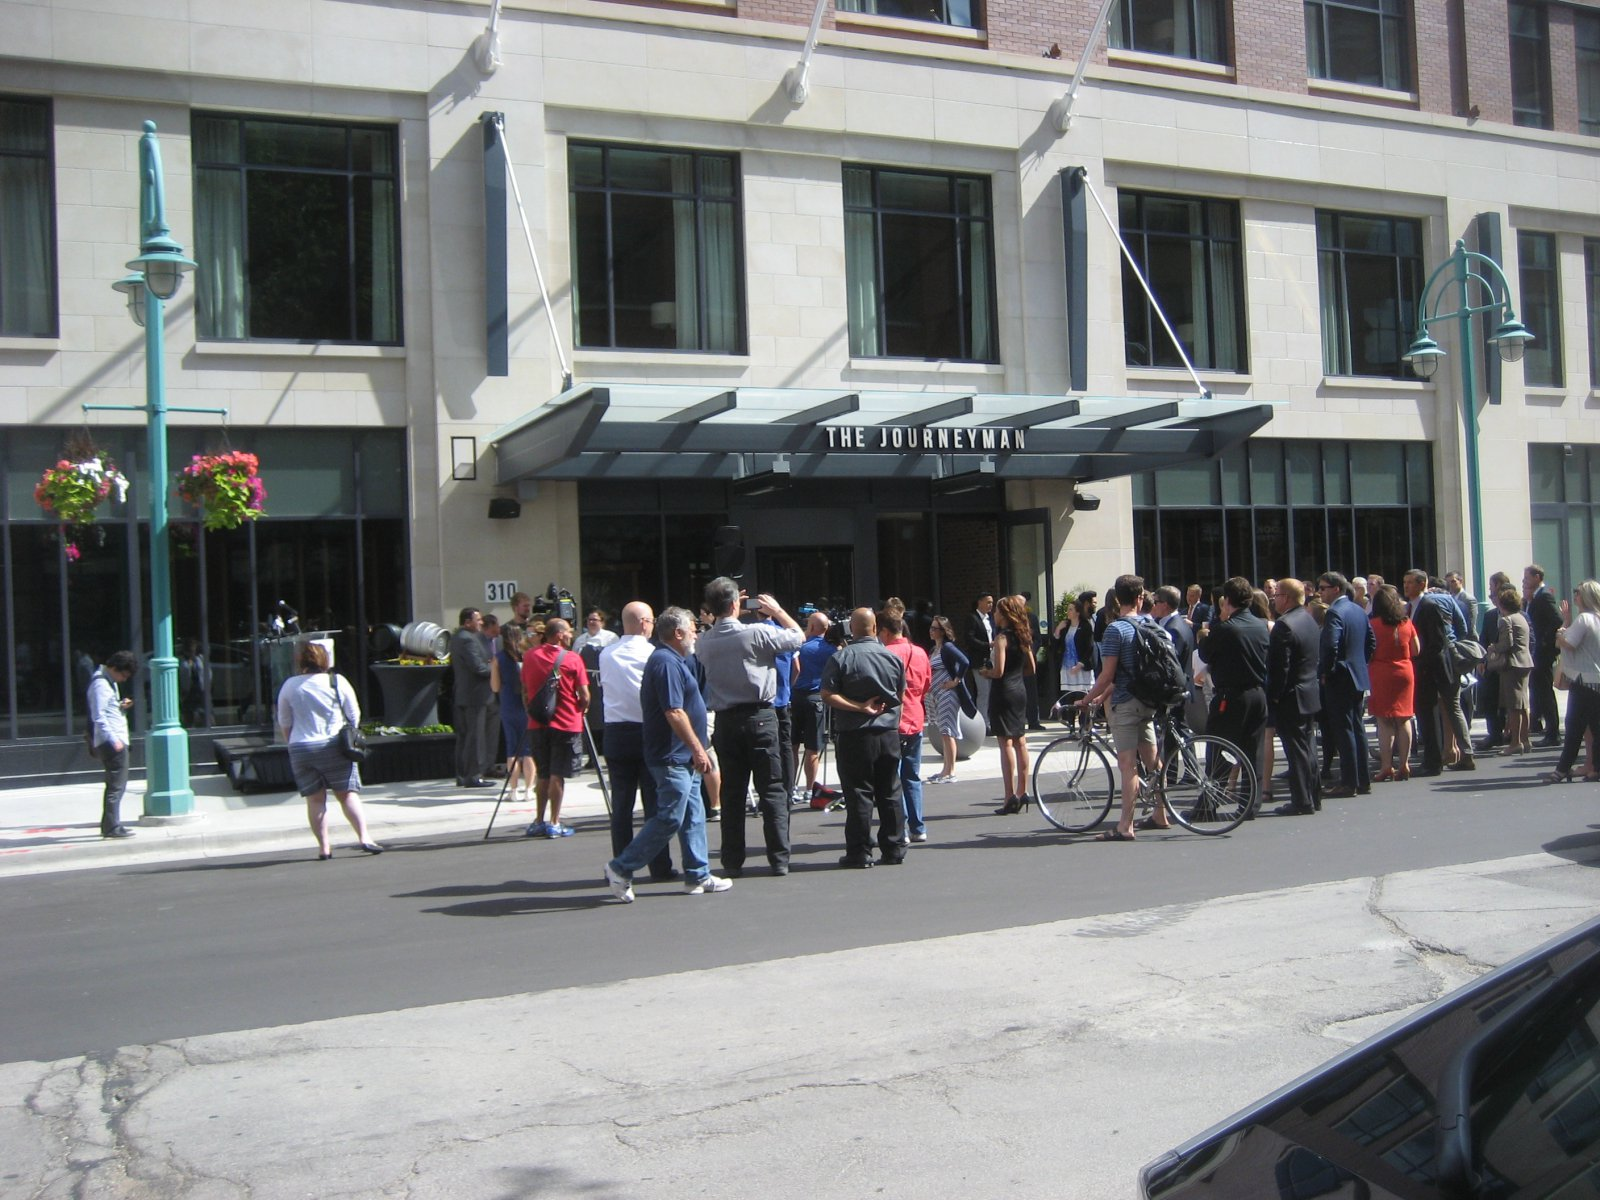 The Kimpton Hotel grand opening